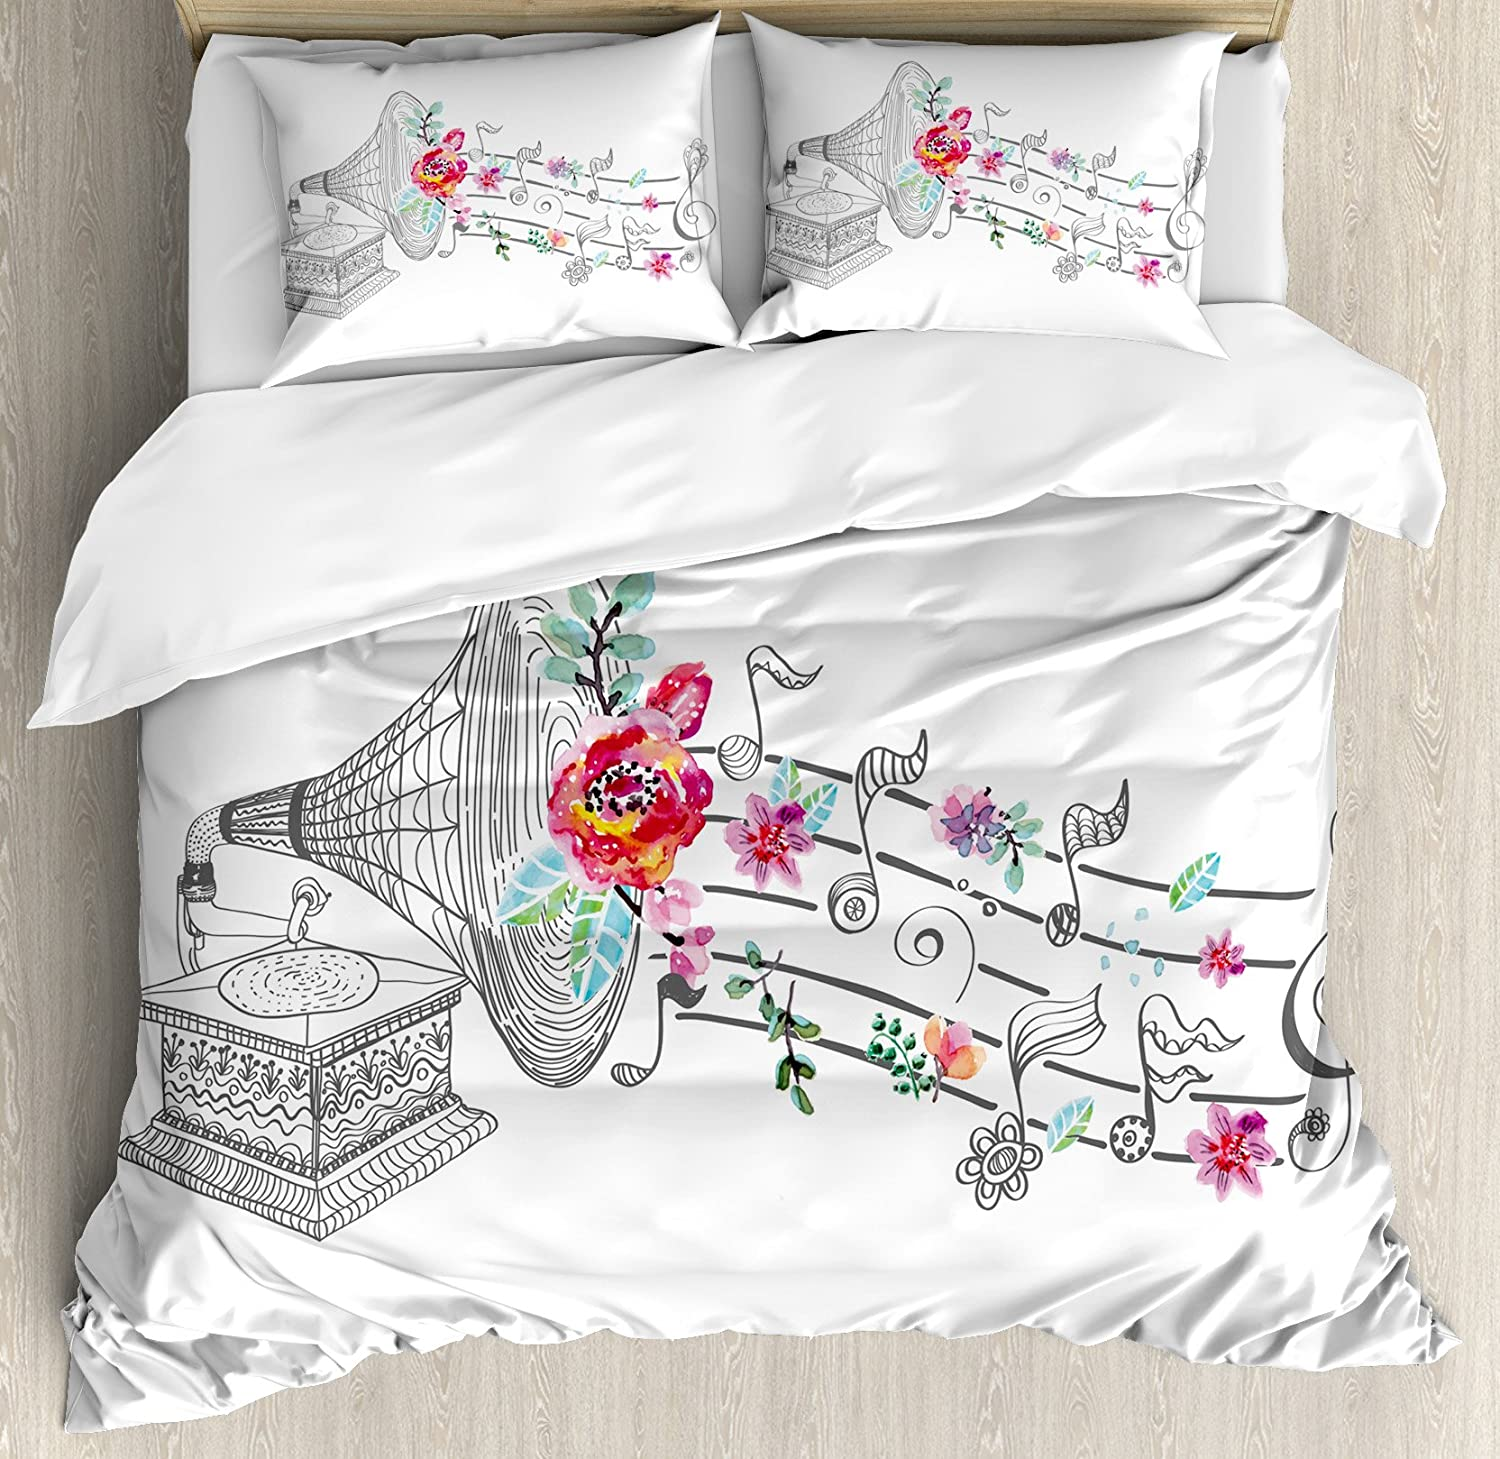 Decorative 2 Piece Bedding Set with 1 Pillow Sham Green Twin Size Ambesonne Dragonfly Duvet Cover Set Doodle Style Giant Dragonfly on Lake Bushes Nature Exotic Picture Art